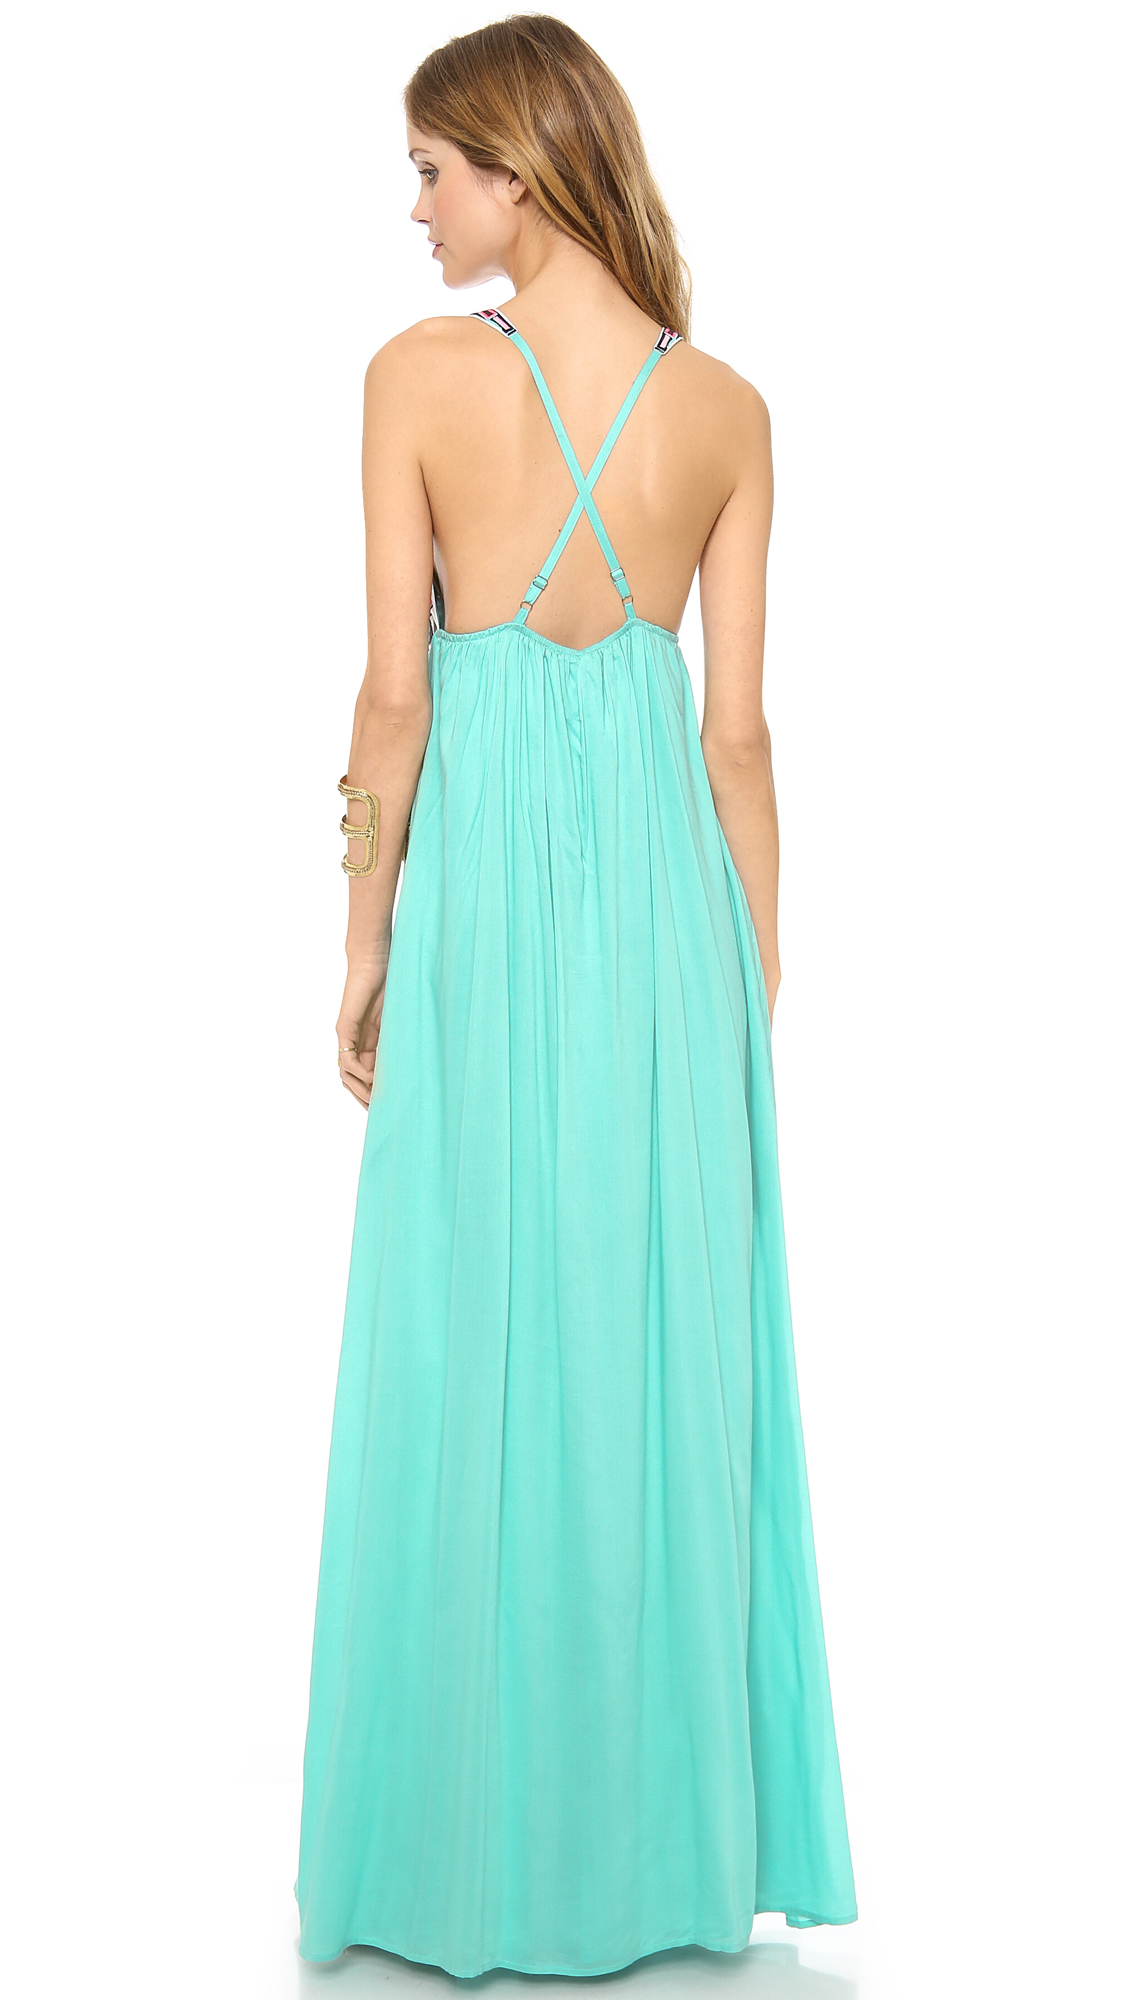 Mara hoffman Cosmic Fountain Embroidered Maxi Dress Turquoise in ...